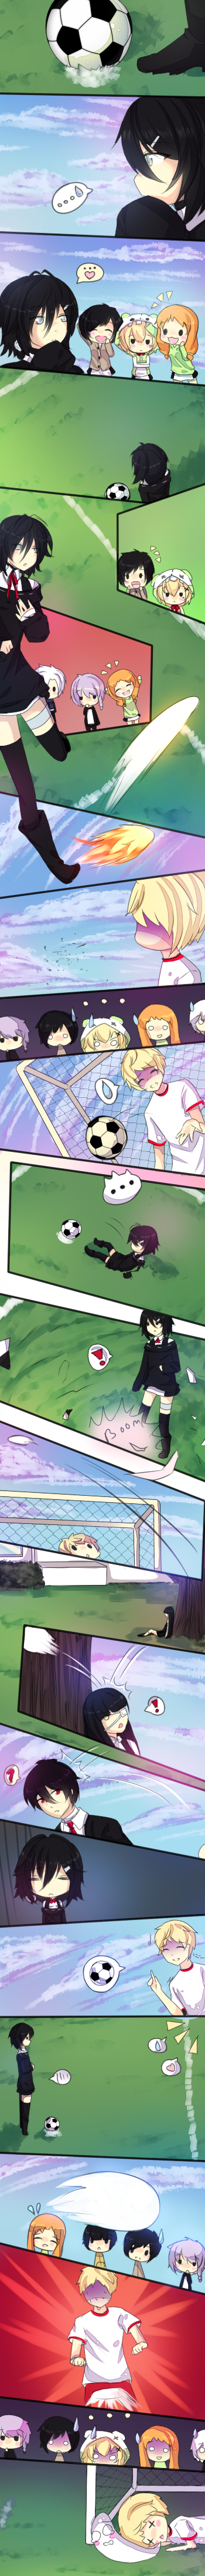 MM: Ruuka's dangerous when playing soccer :'D by Amacchu